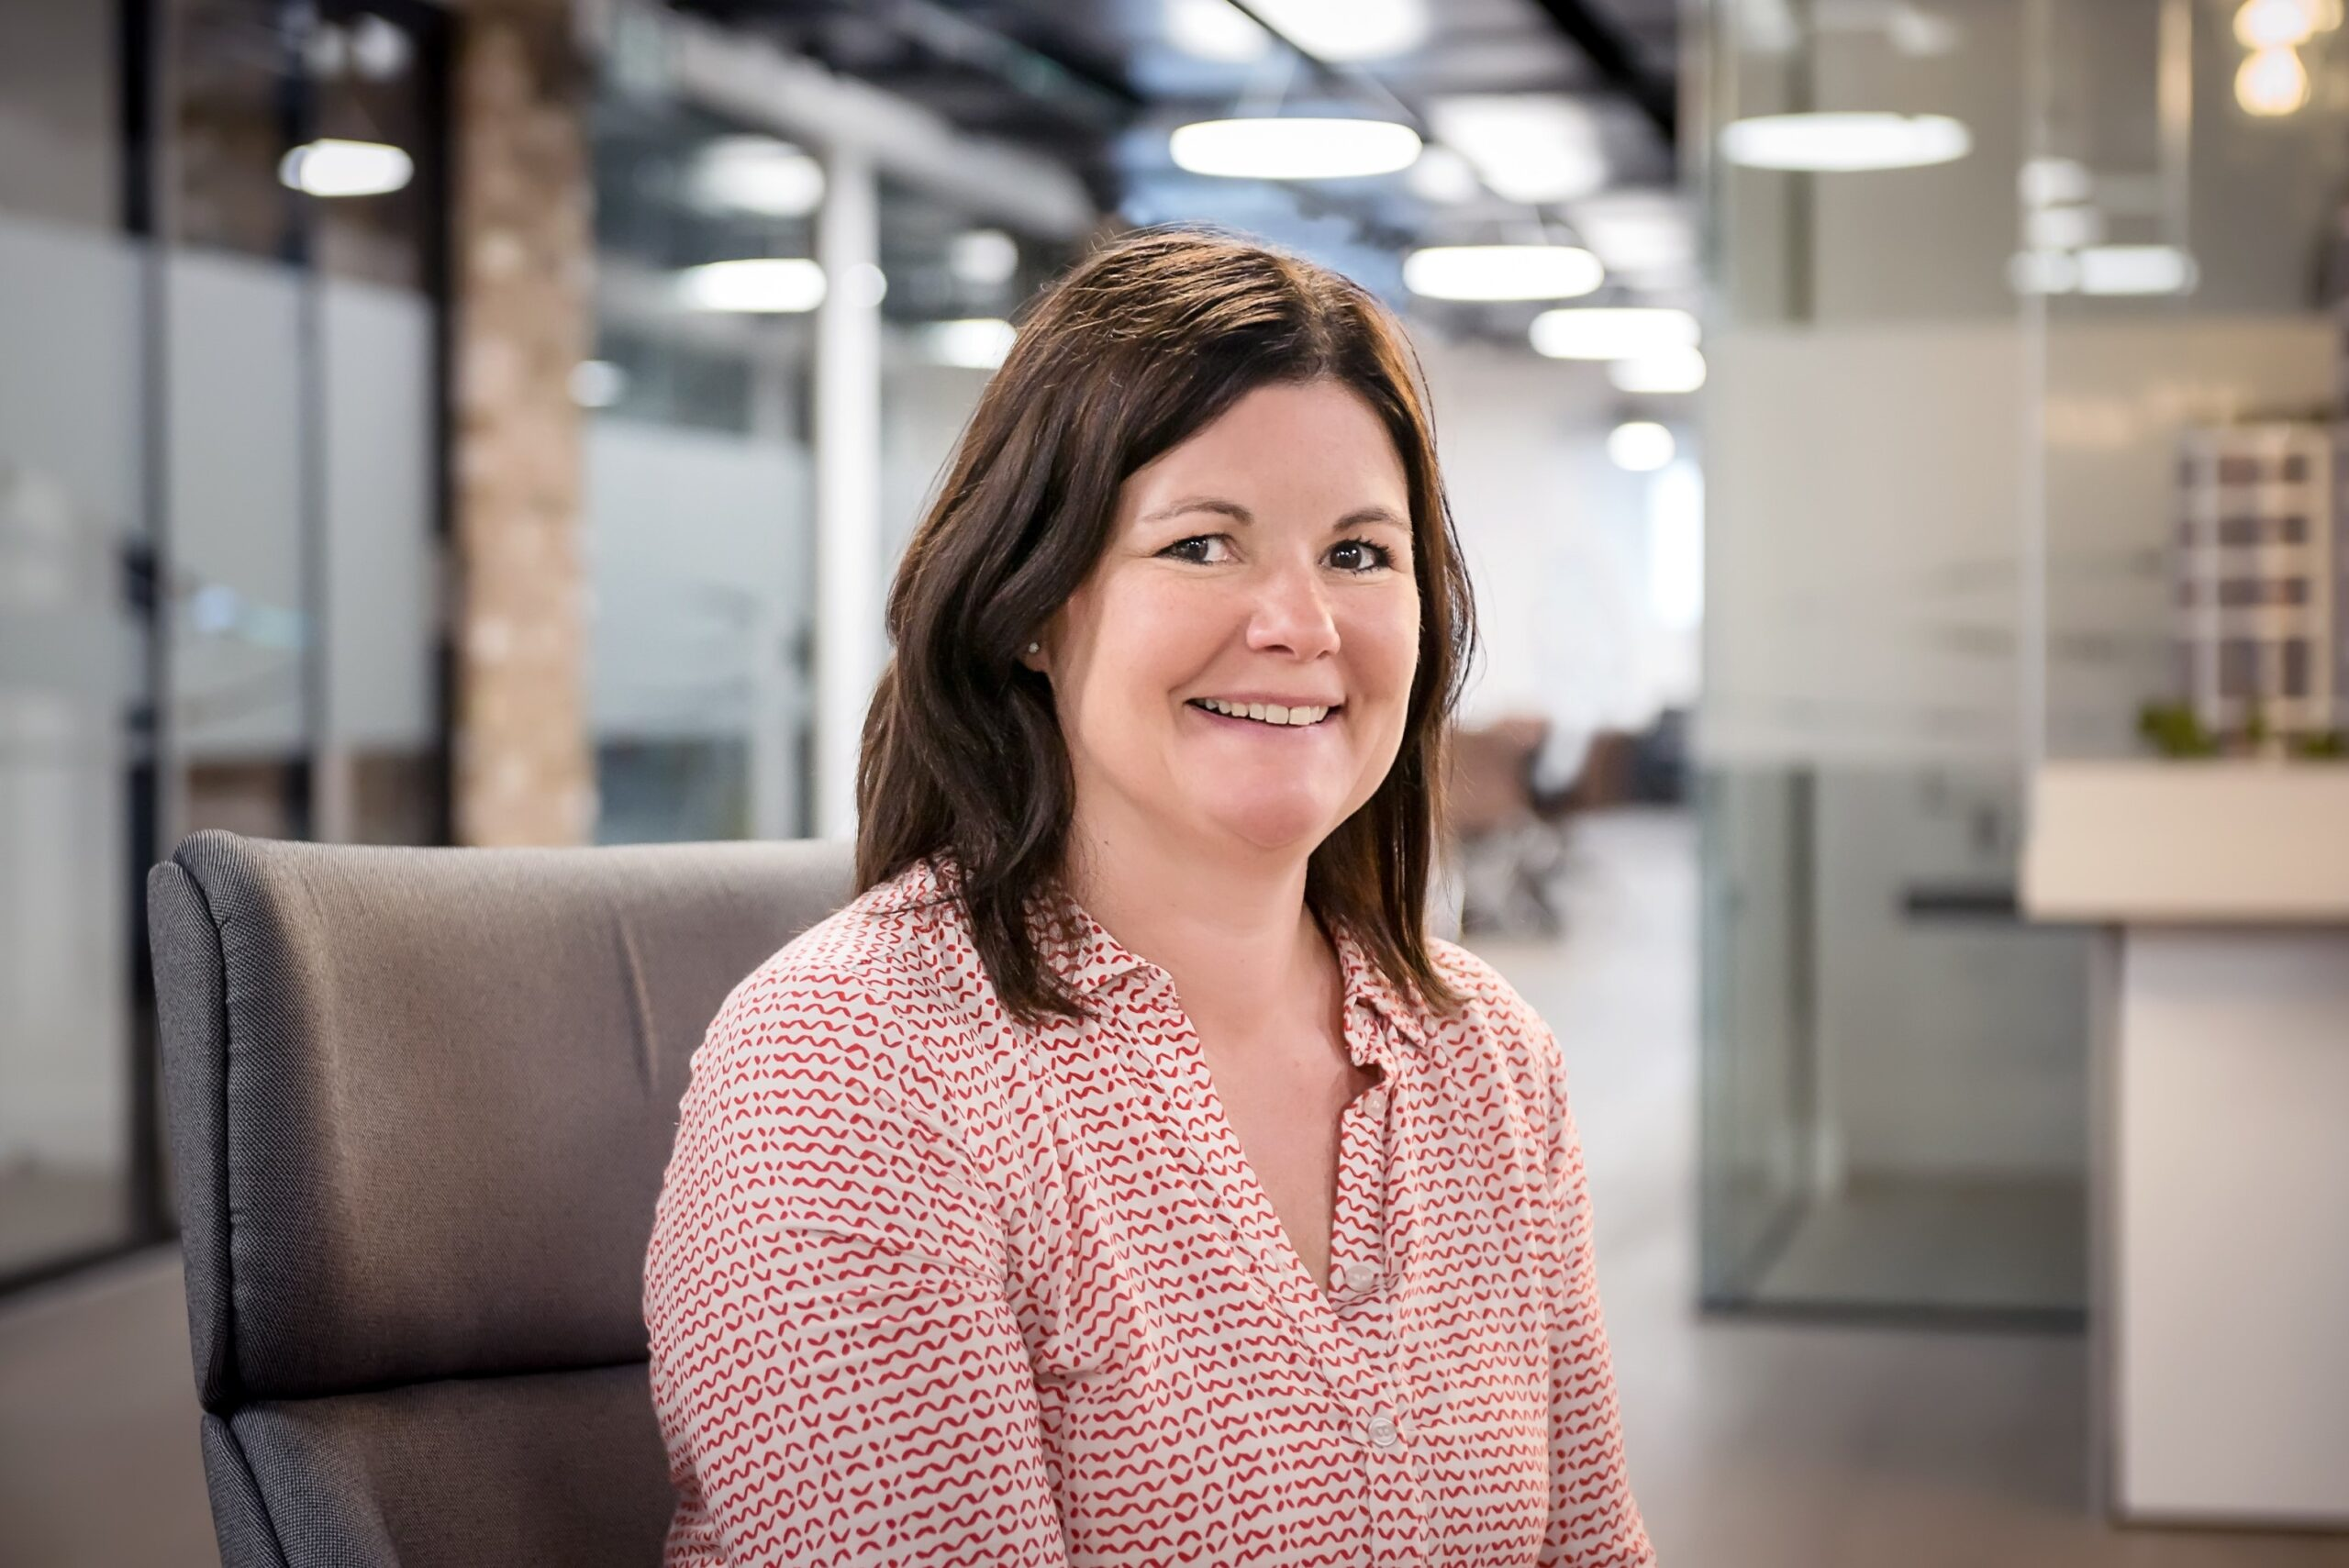 Time to Talk Talent and Purpose: Motivation meets team spirit with Kate Brown, Specsavers